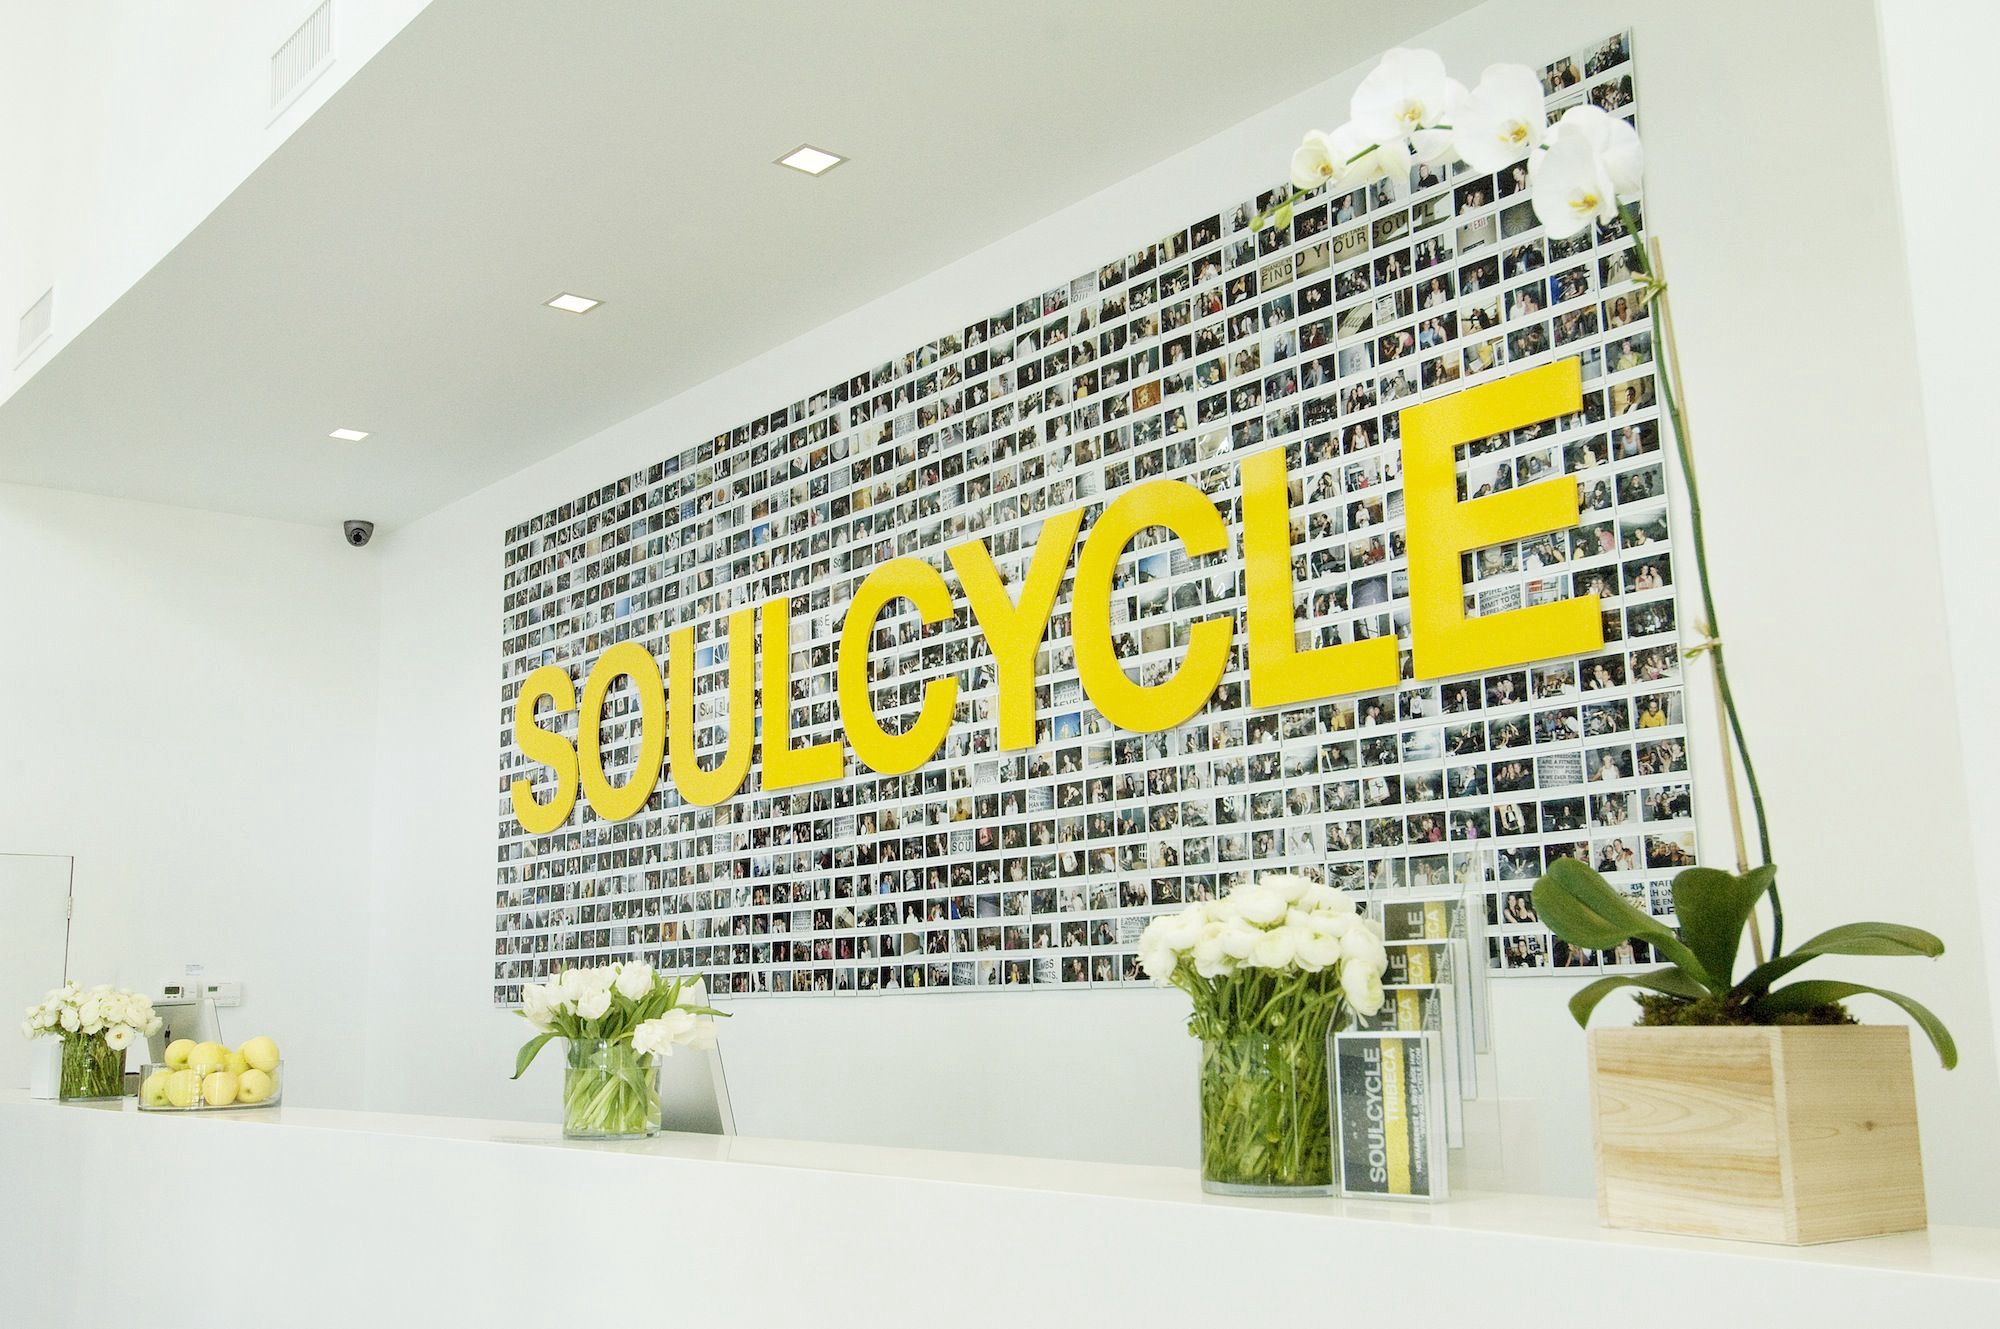 SoulCycle: A model for all startups? - Adam London - Medium